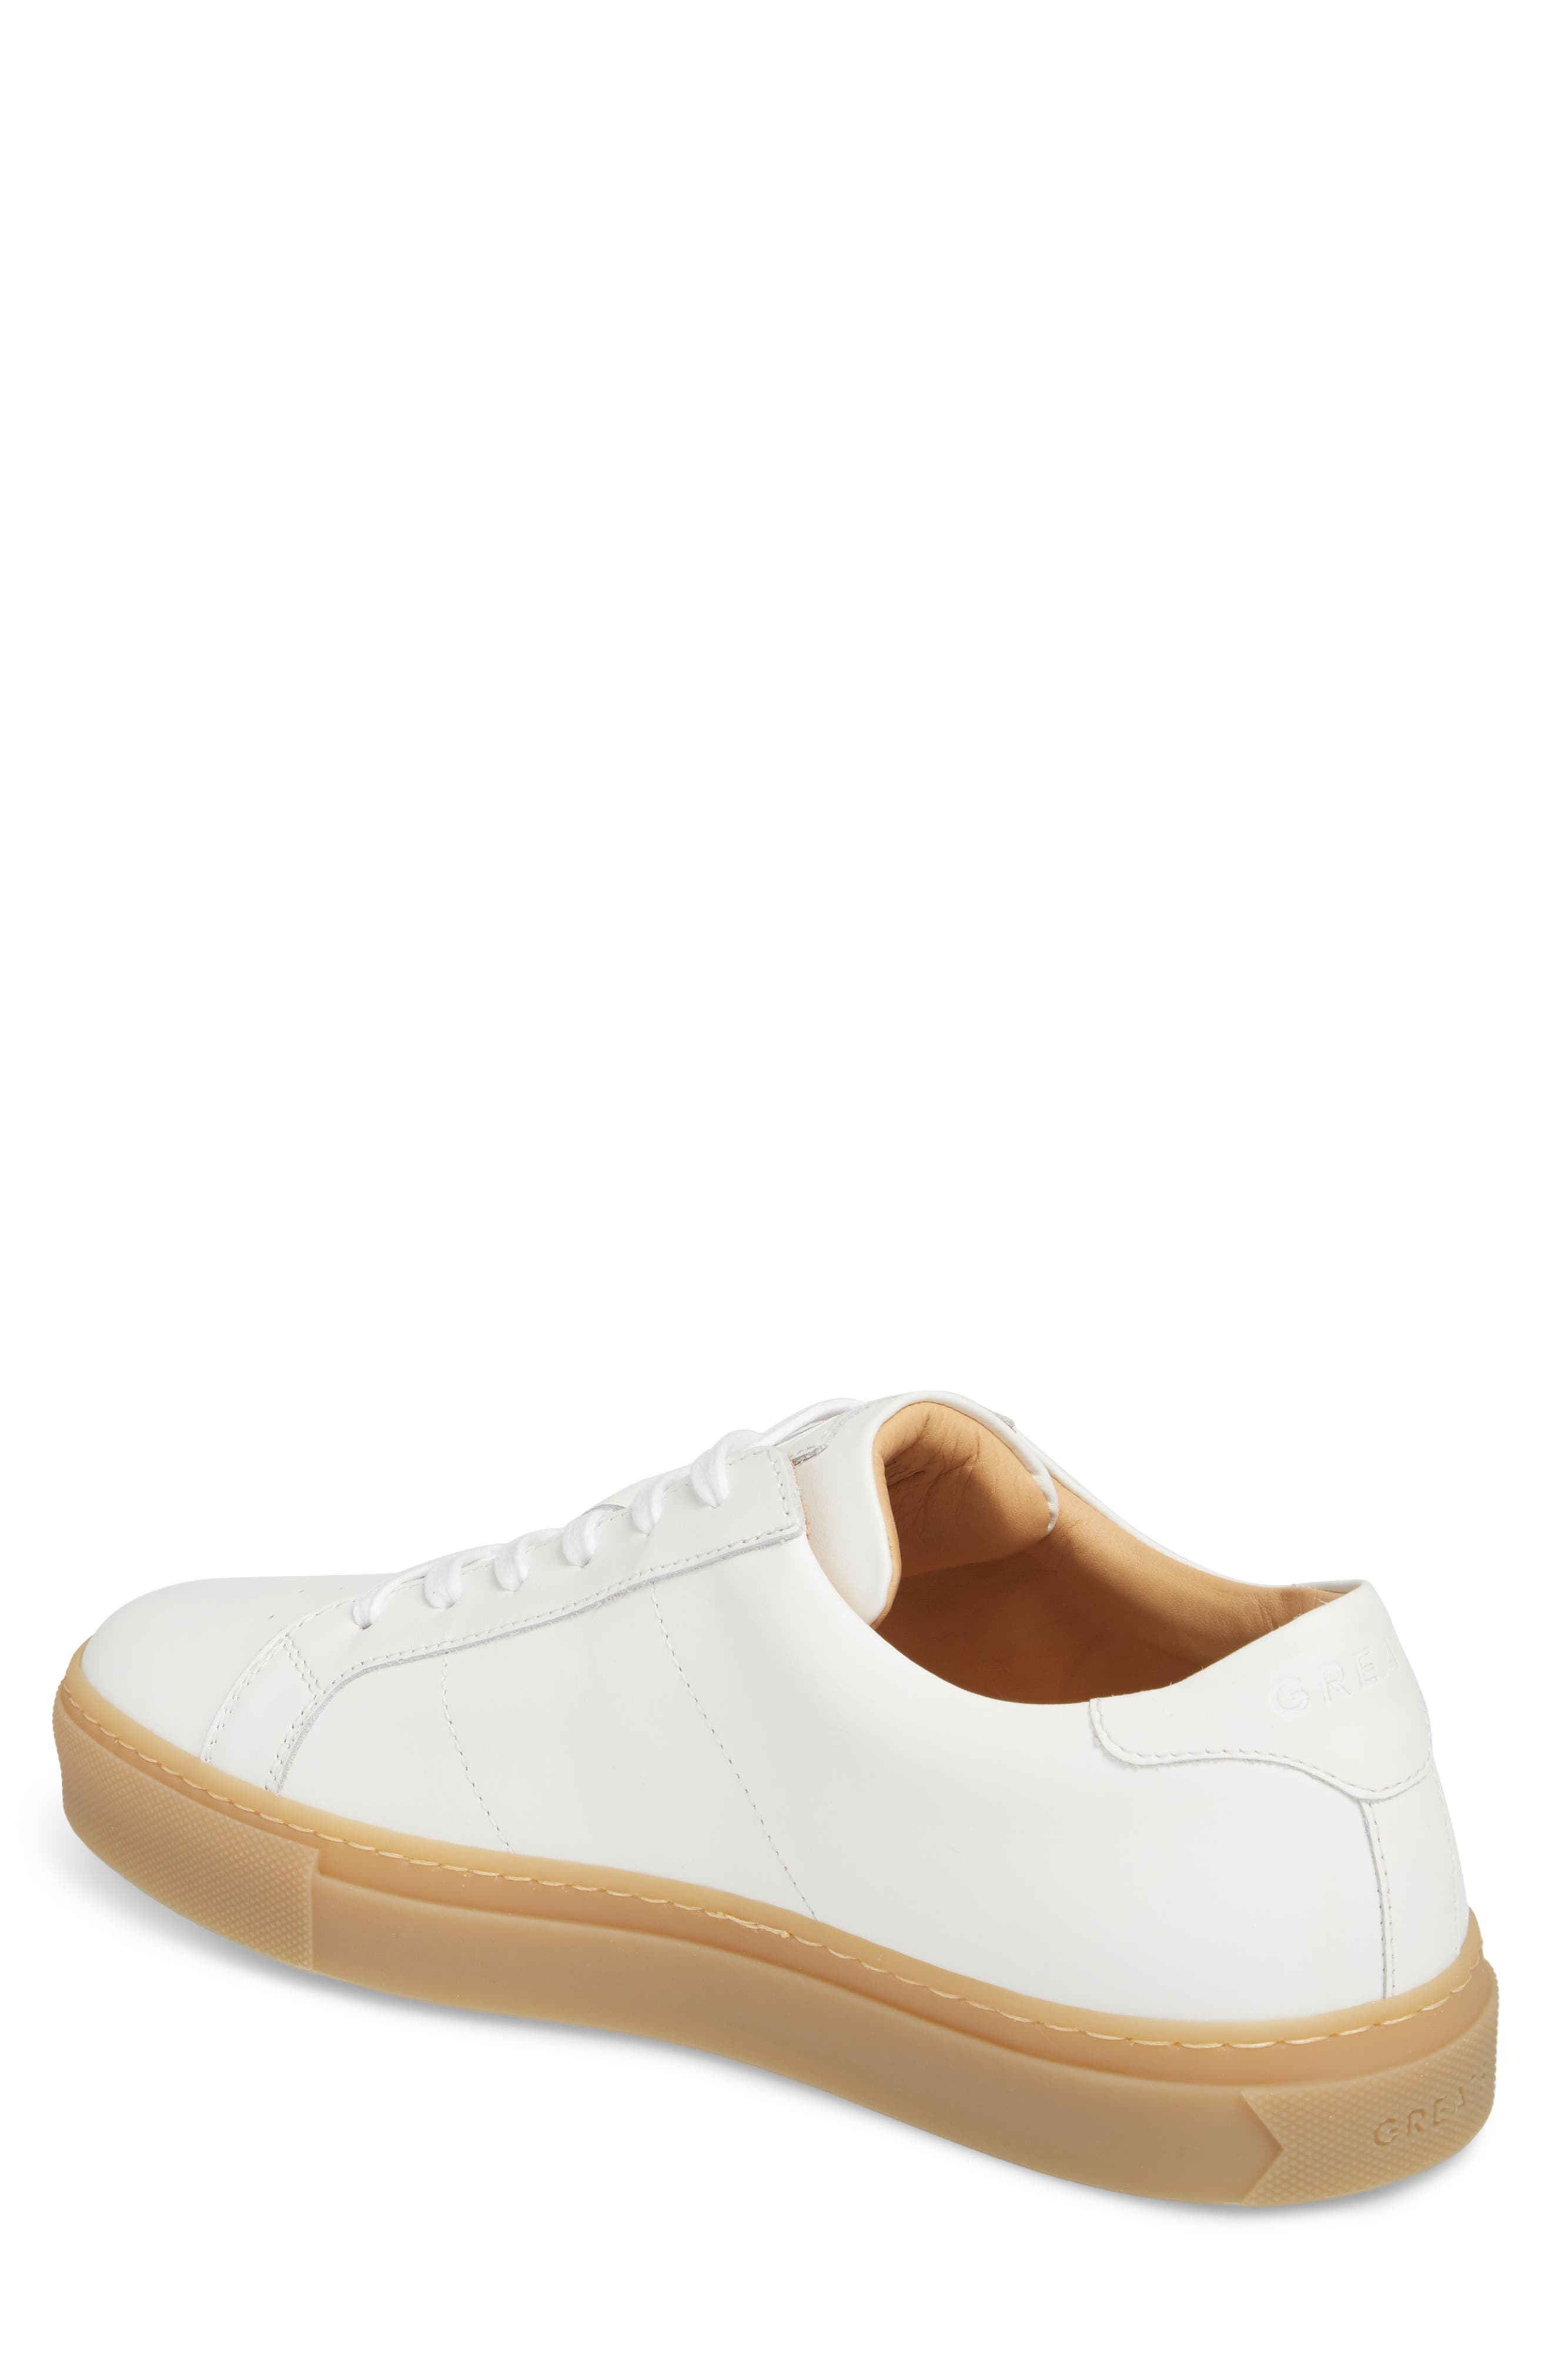 Royale Reverse Sneaker,                             Alternate thumbnail 2, color,                             WHITE/ GUM